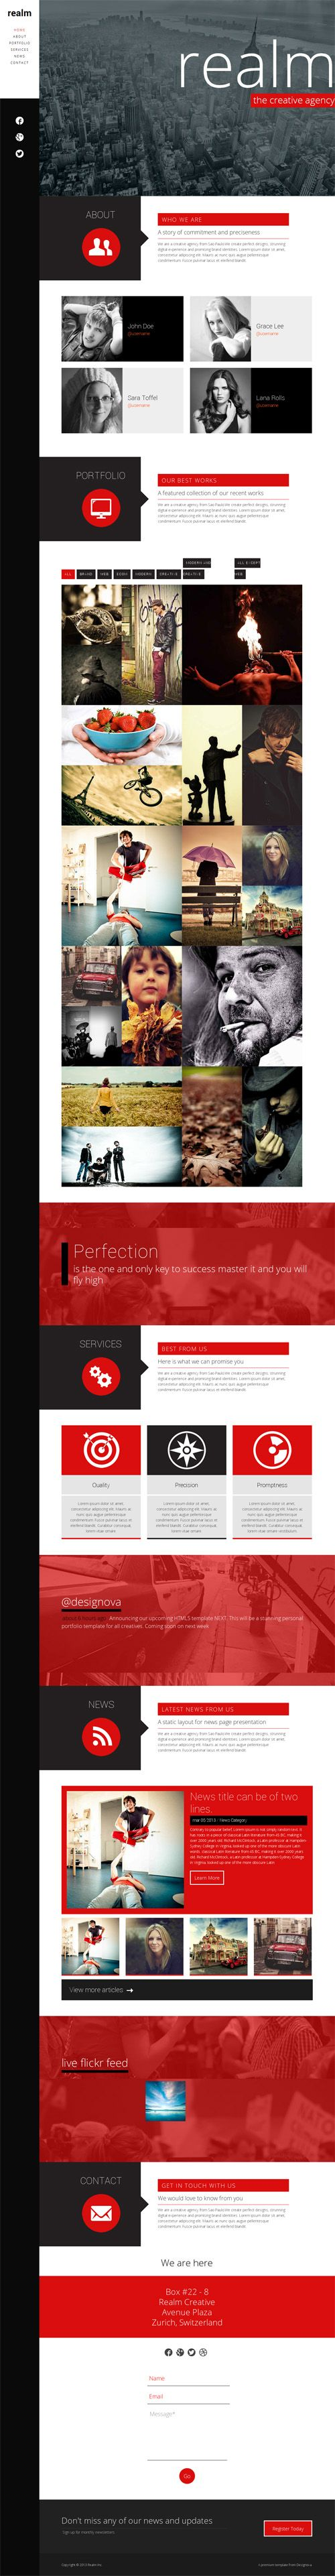 REALM - Unique One Page Parallax Responsive HTML5 Template